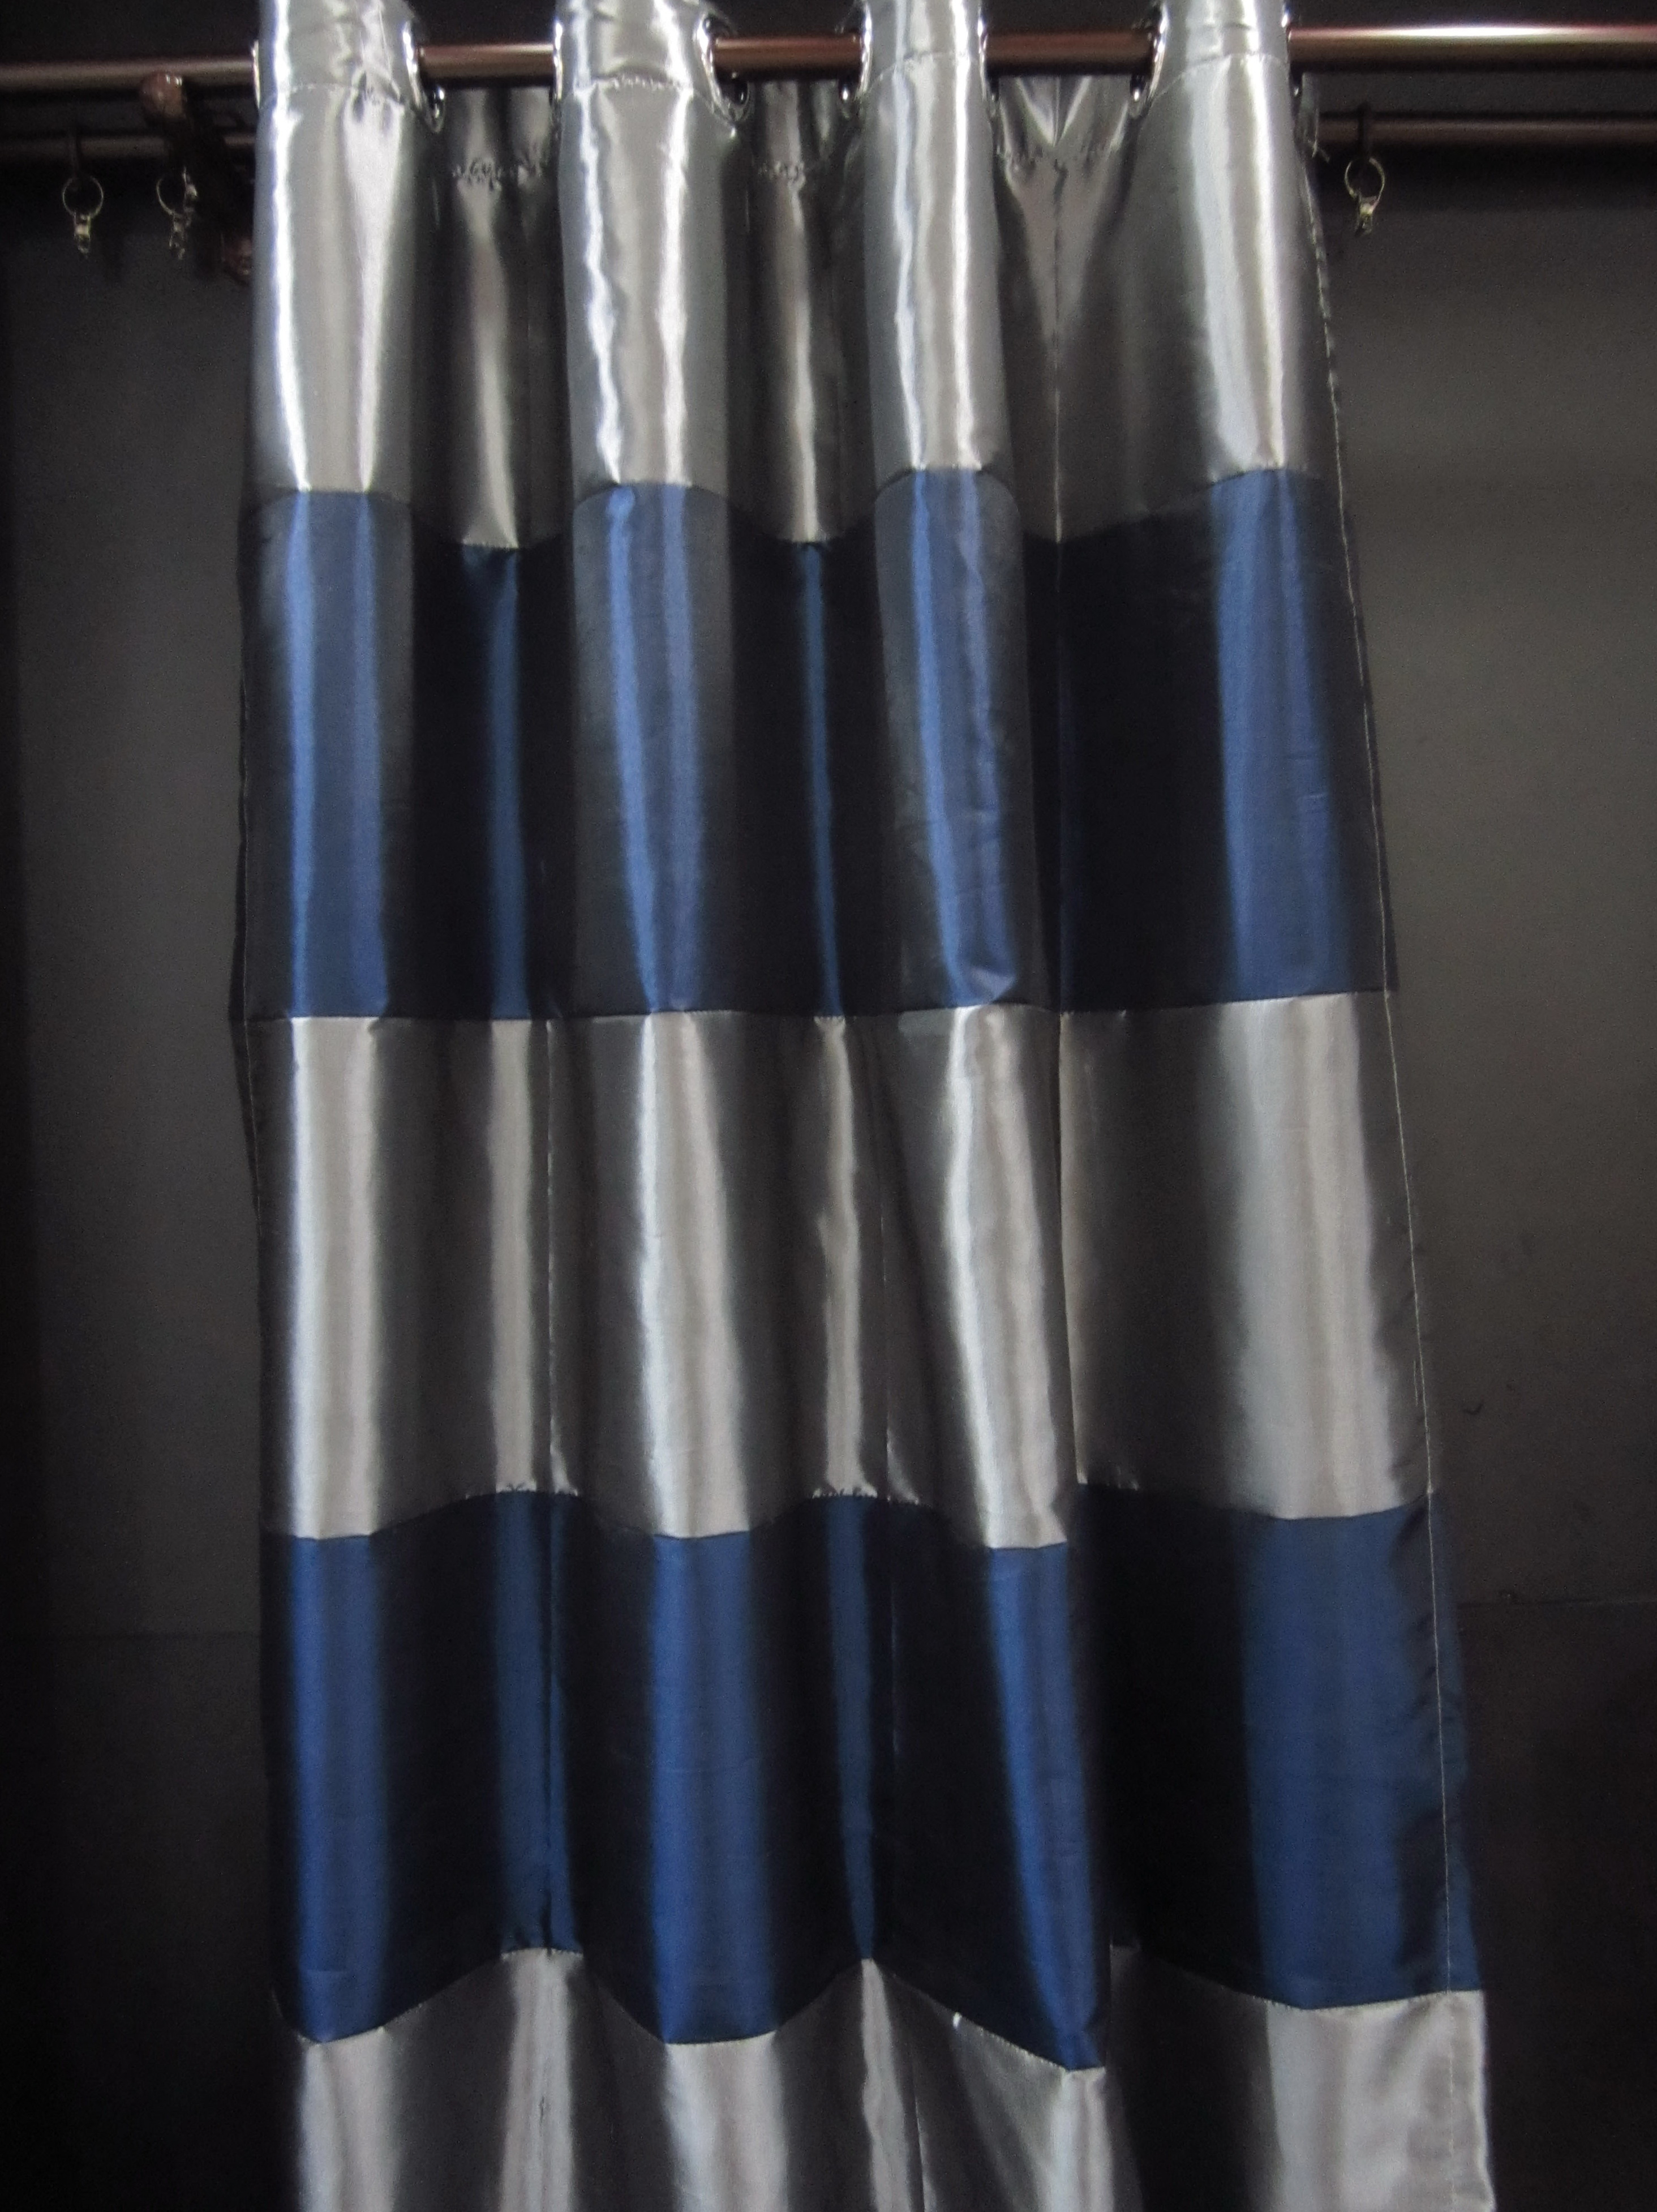 Blue And Gray Striped Curtains  Home Design Ideas